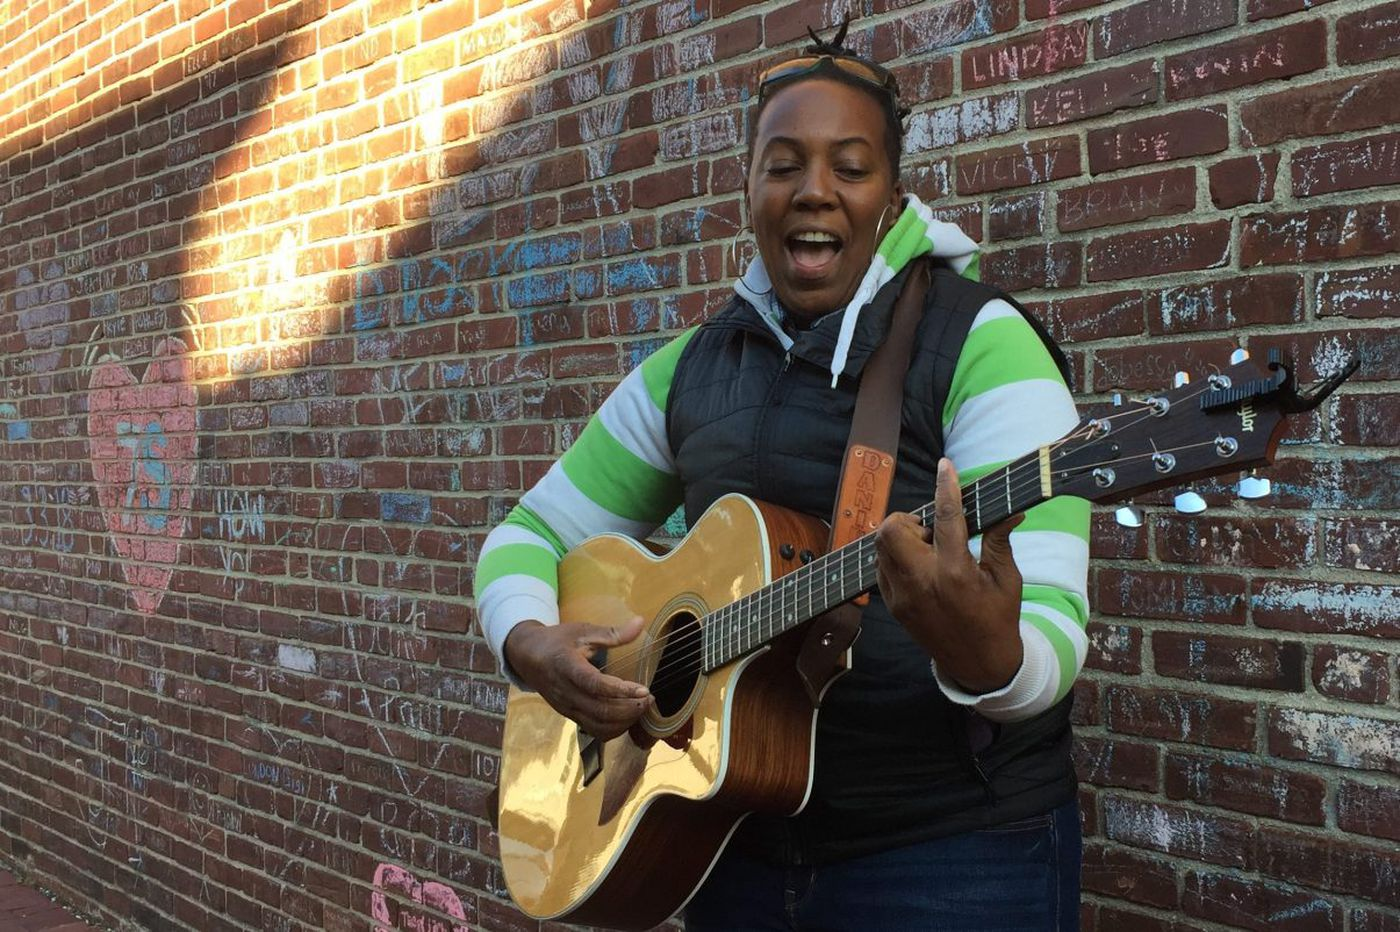 Singer with rare eye disease runs Philly co-op music studios   We the People